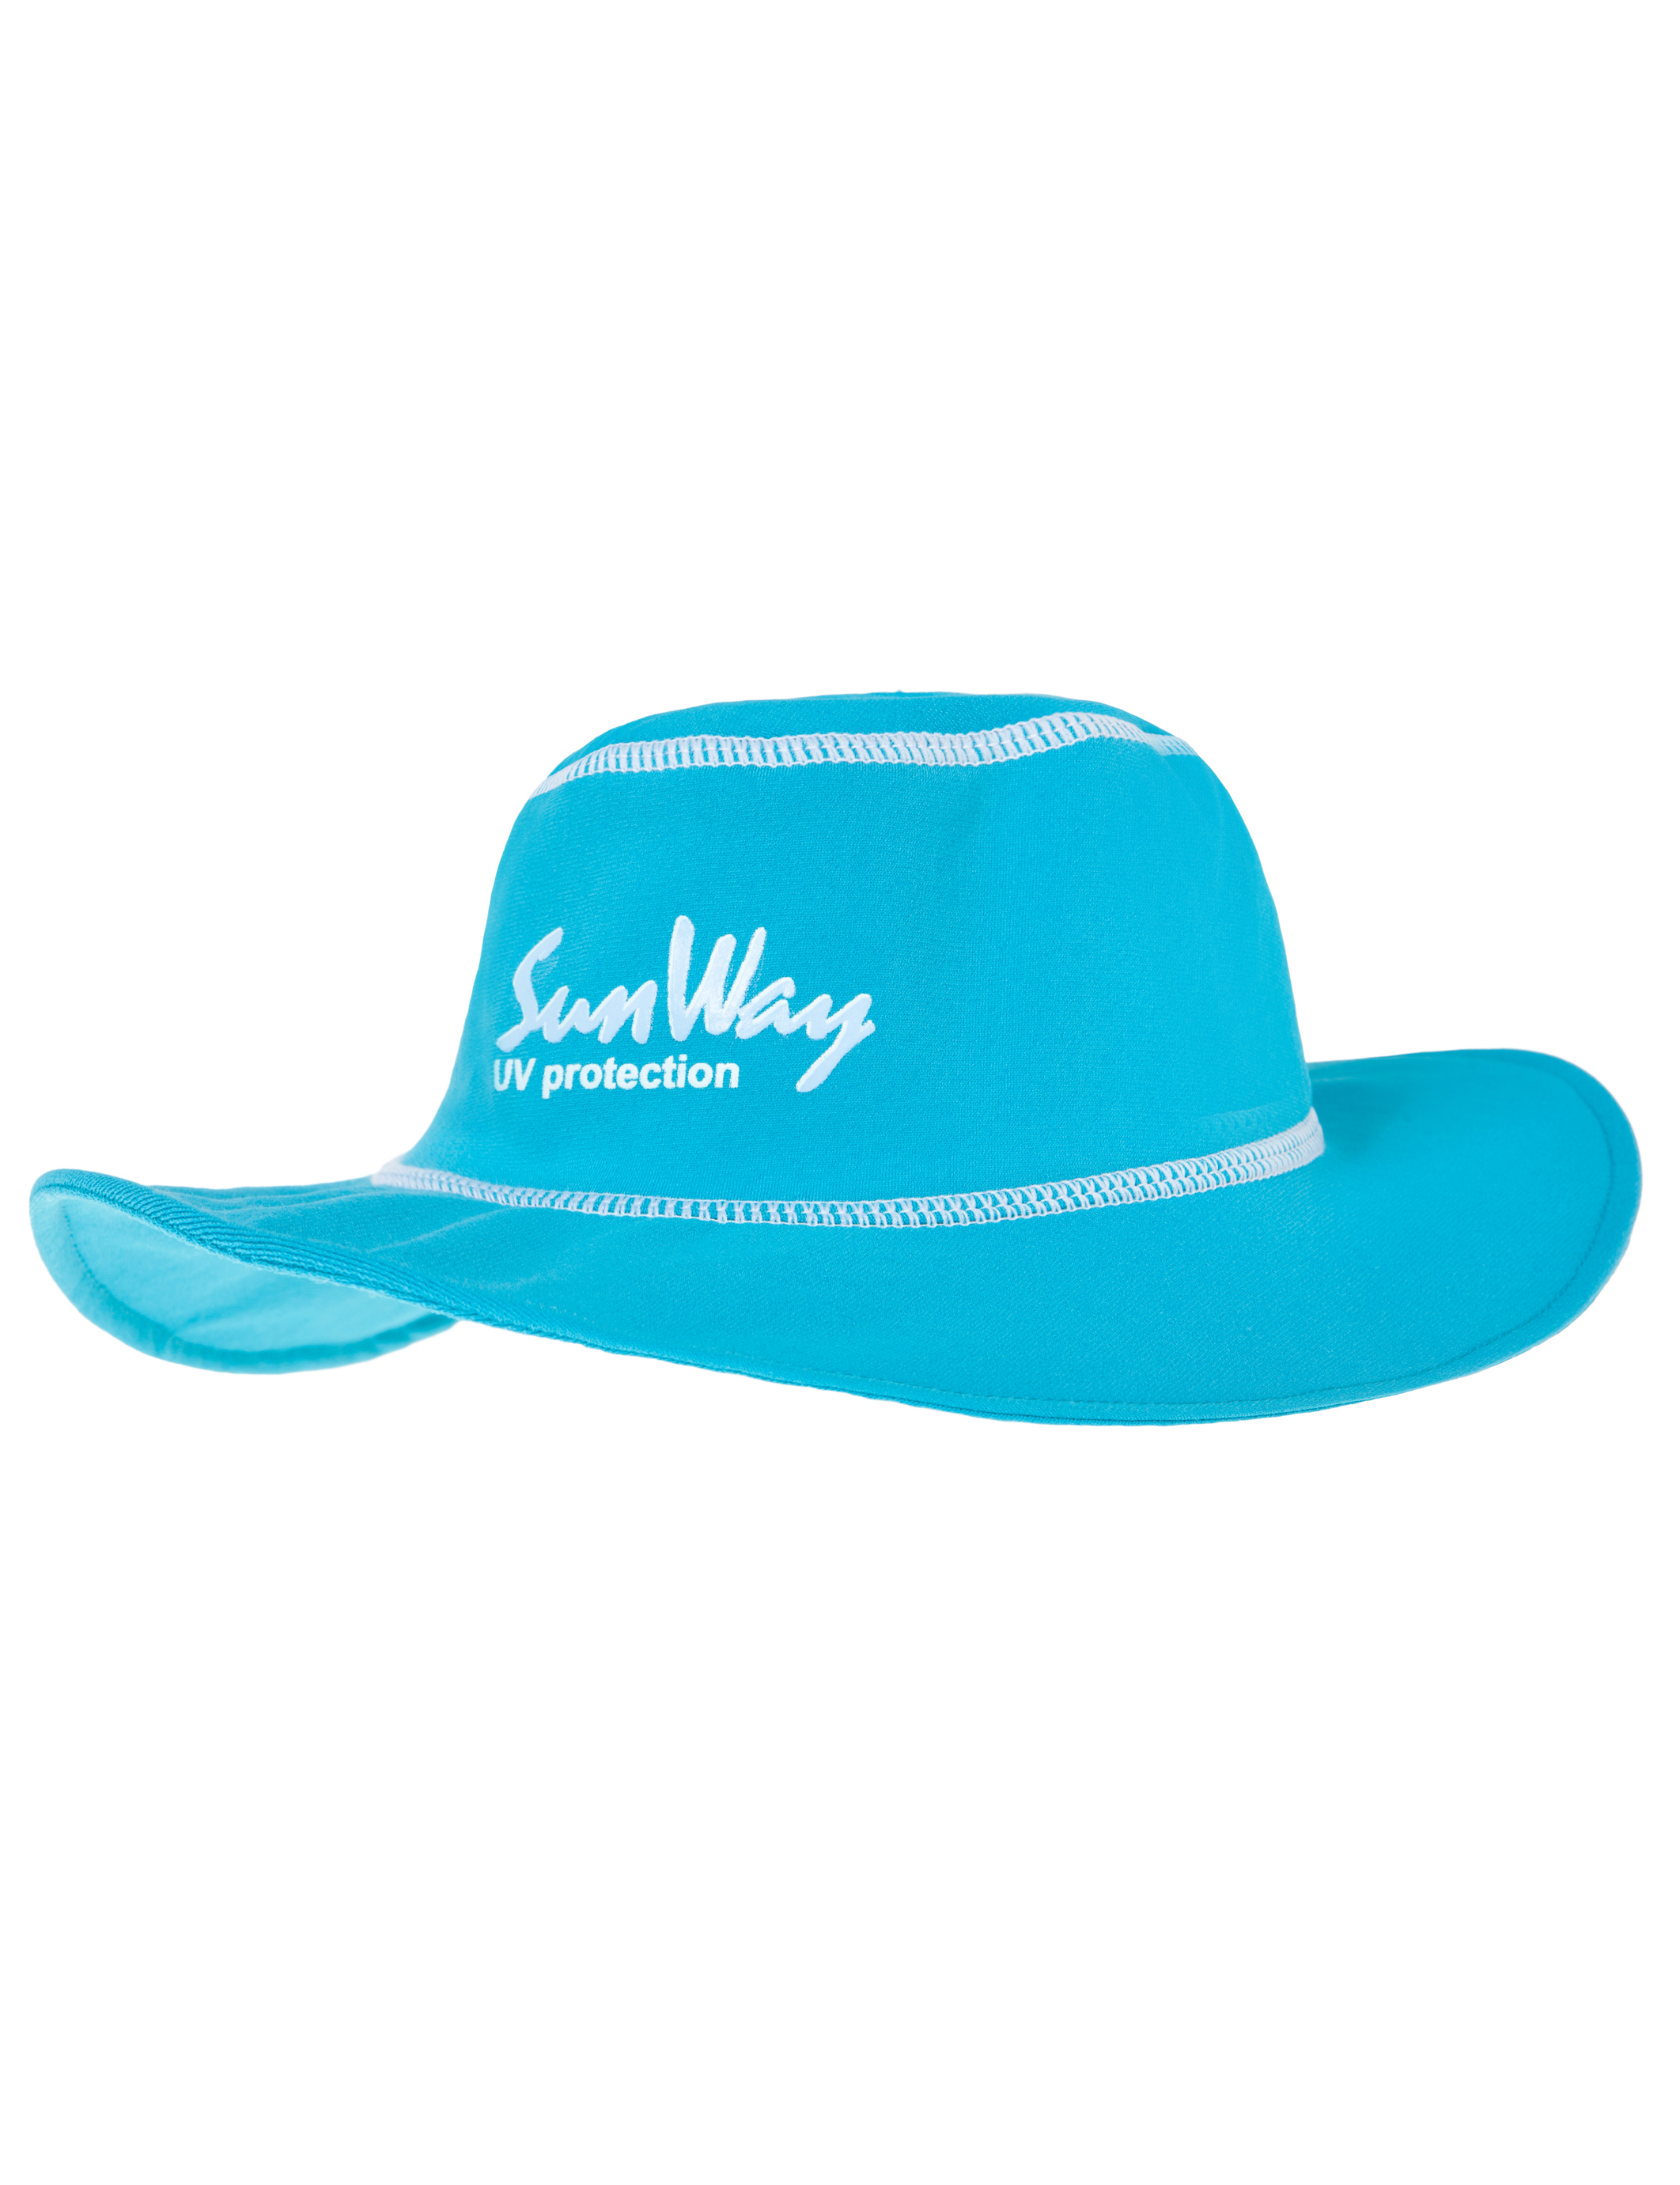 Babies and Toddlers Light Blue Wide Brim Hat